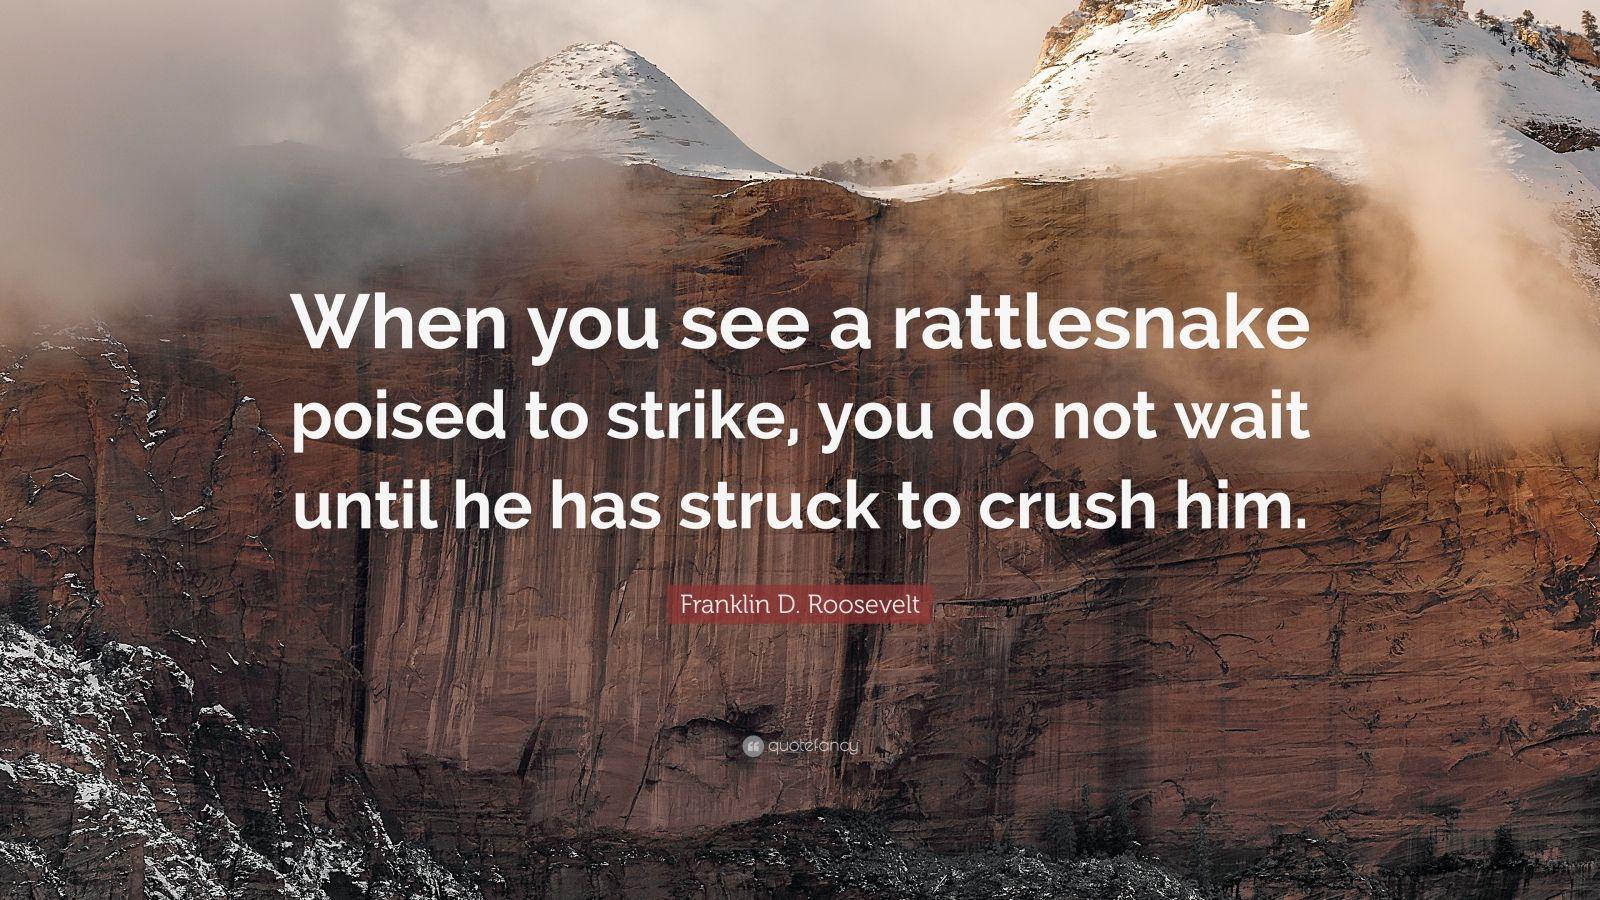 """Franklin D. Roosevelt Quote: """"When you see a rattlesnake poised to strike, you do not wait until he has struck to crush him."""""""